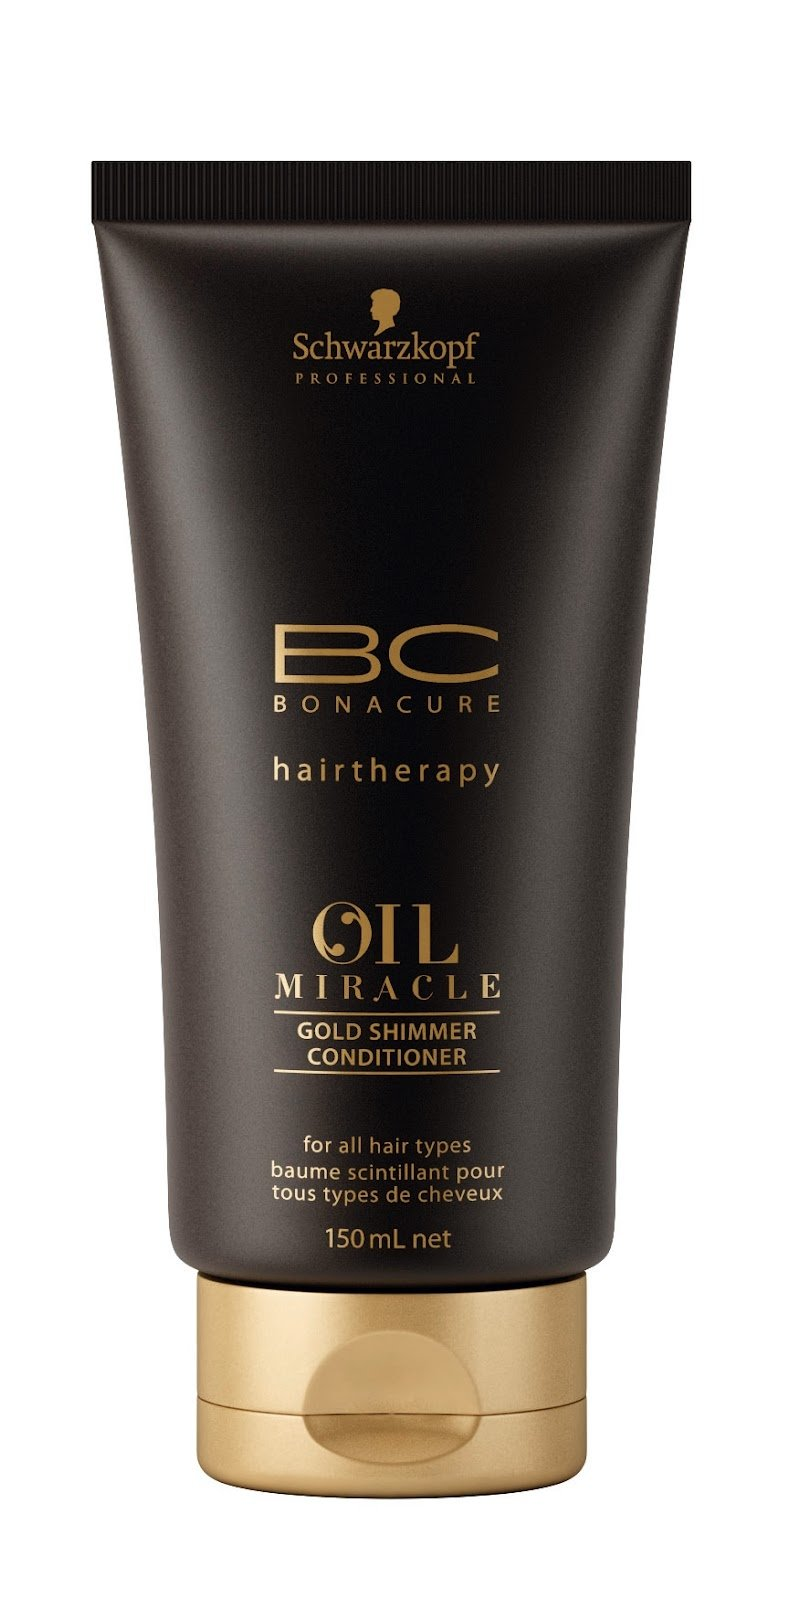 OIL%20MIRACLE%20CONDITIONER%20150ML